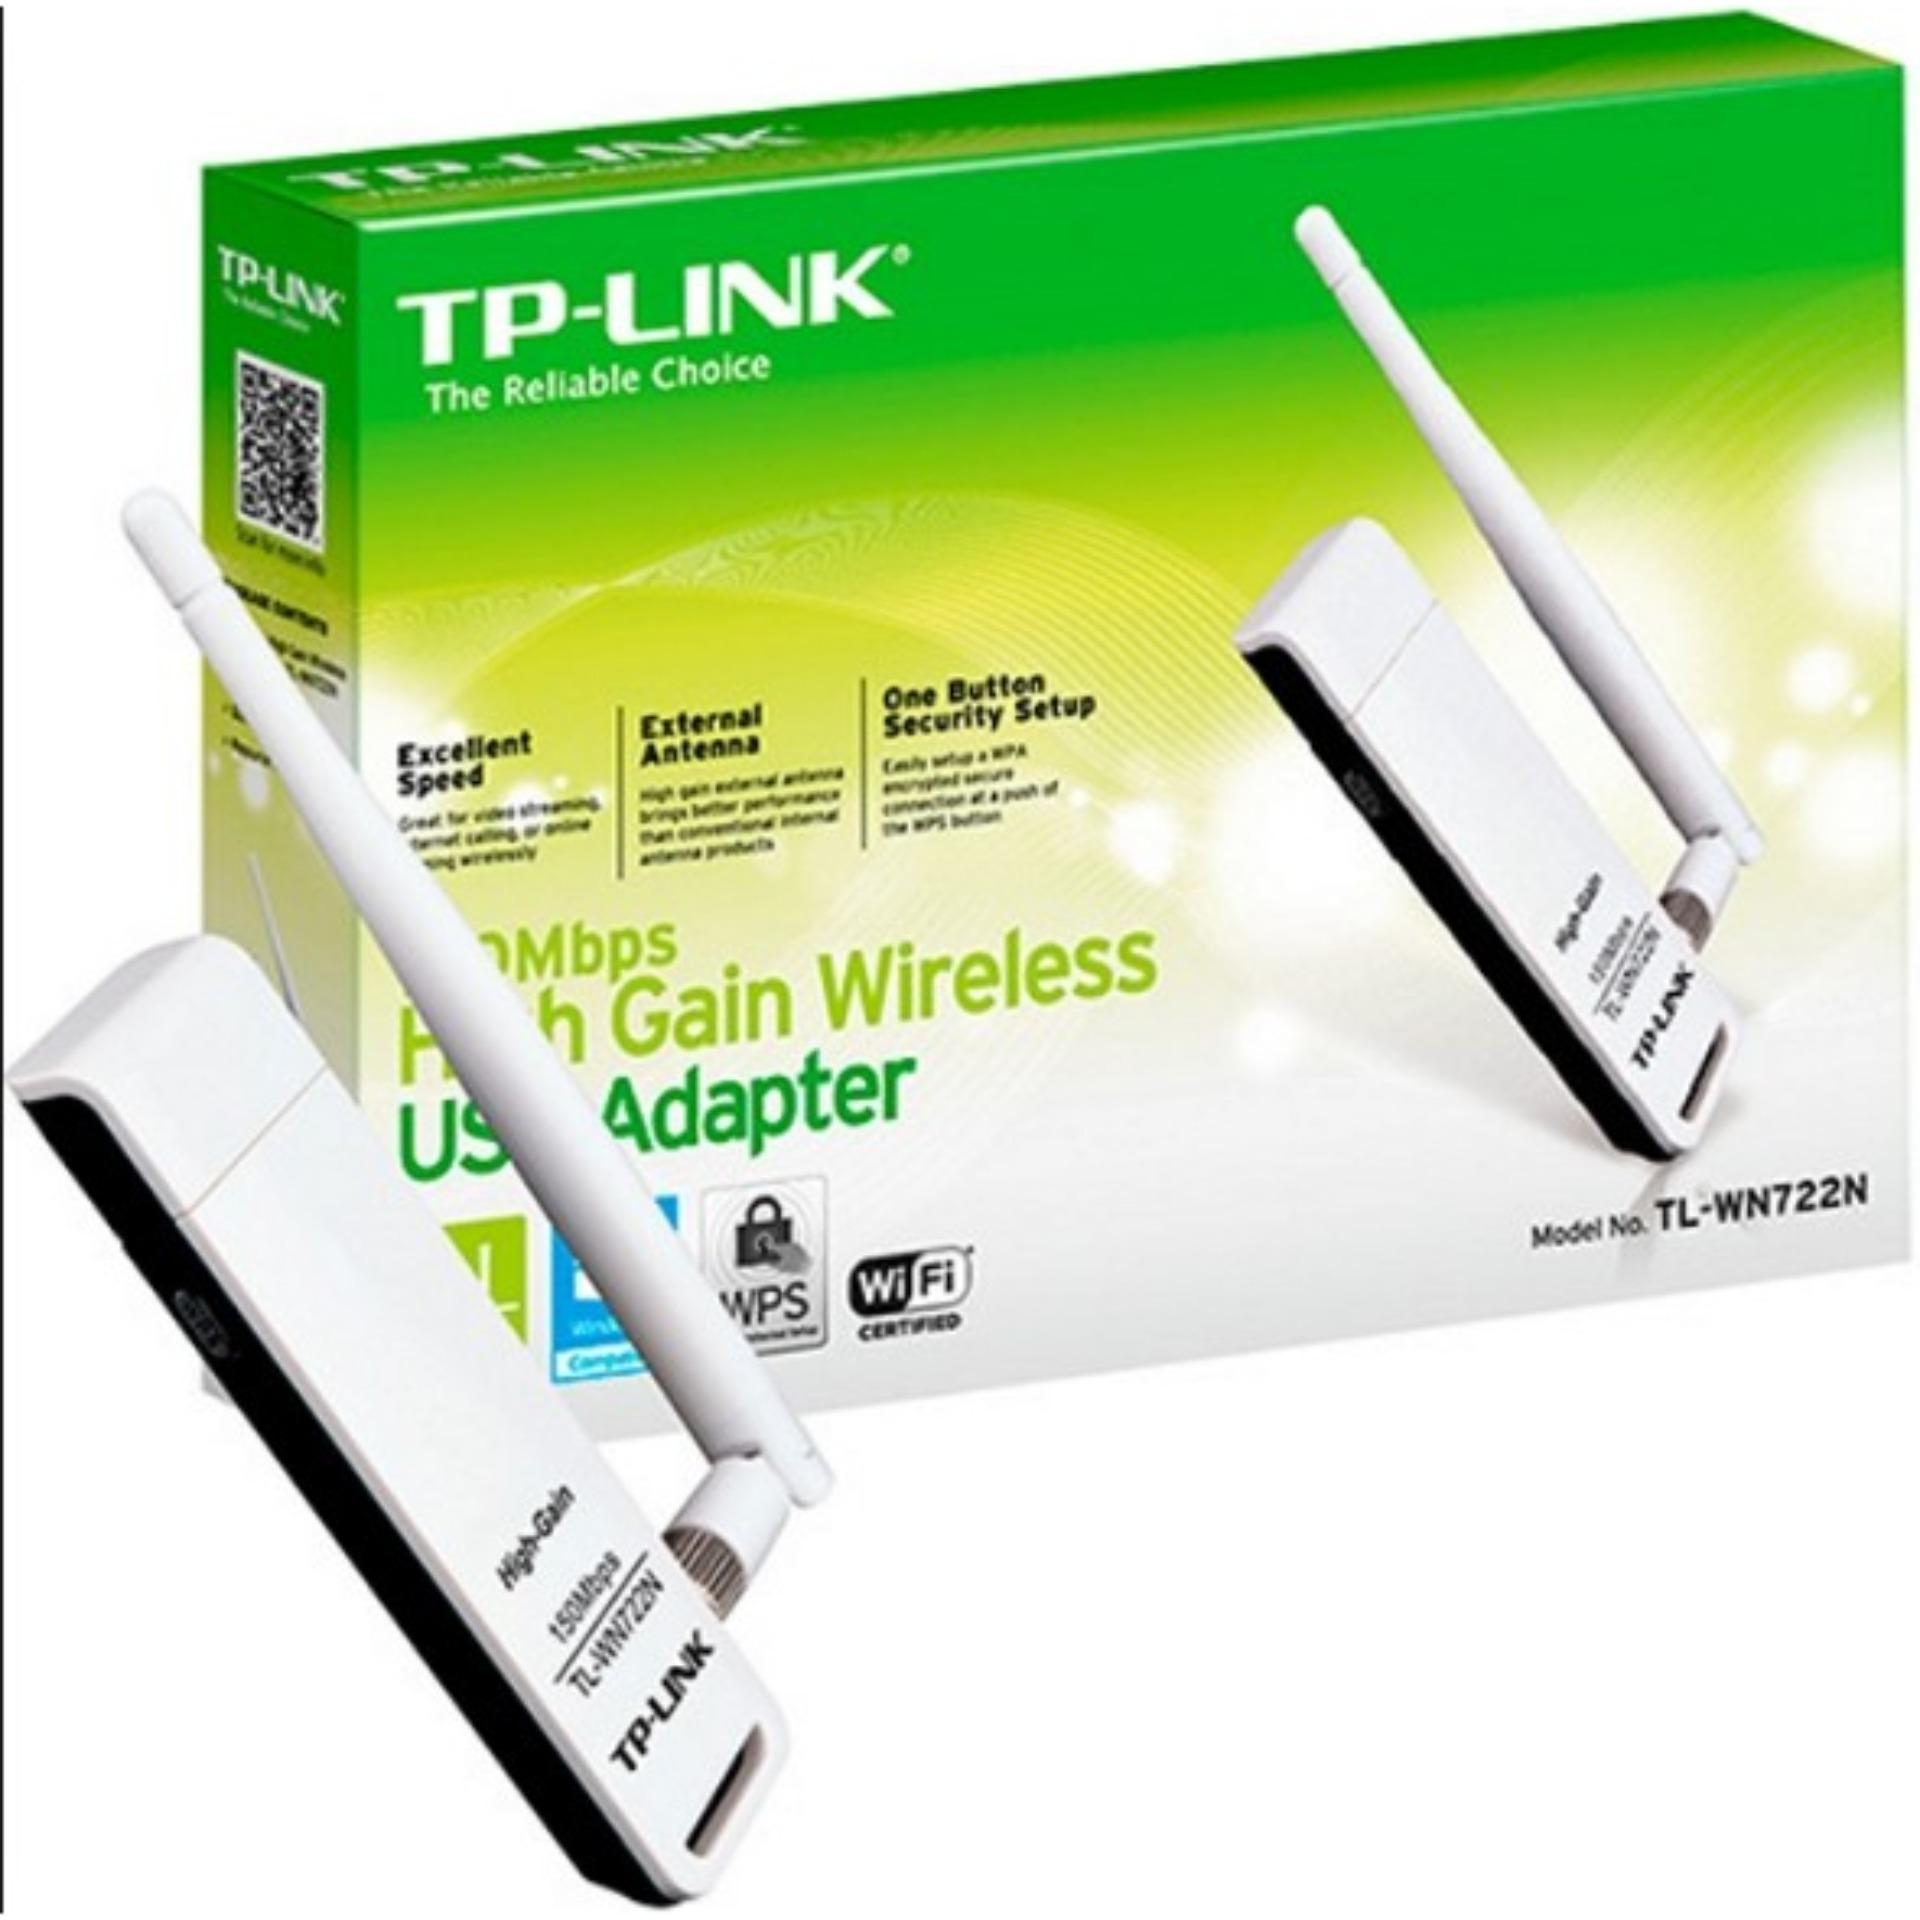 usb-wifi-adapter-tp-link-tl-wn722n